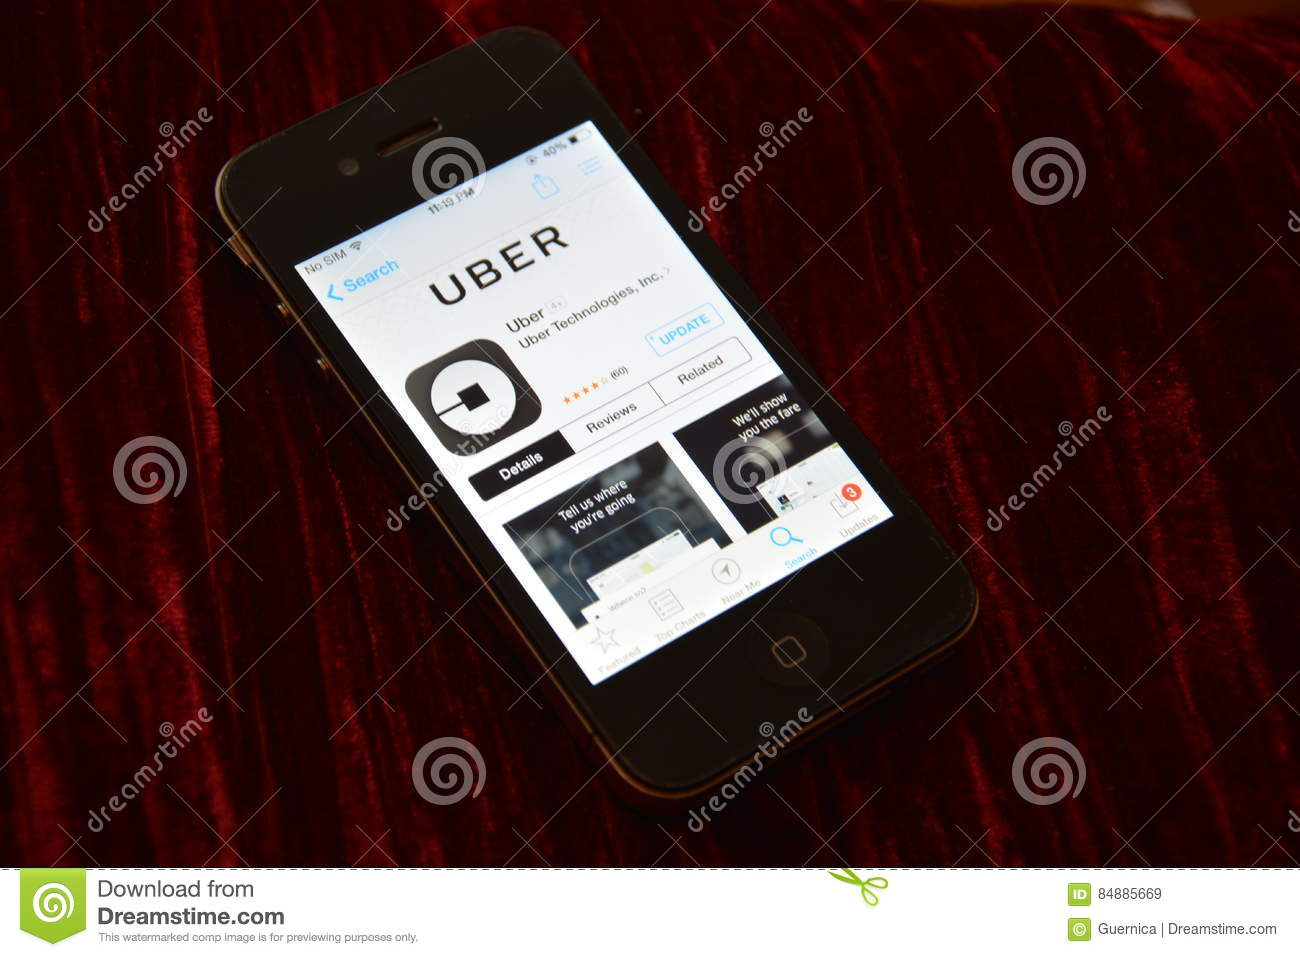 IPhone Uber App On App Store Editorial Stock Image - Image